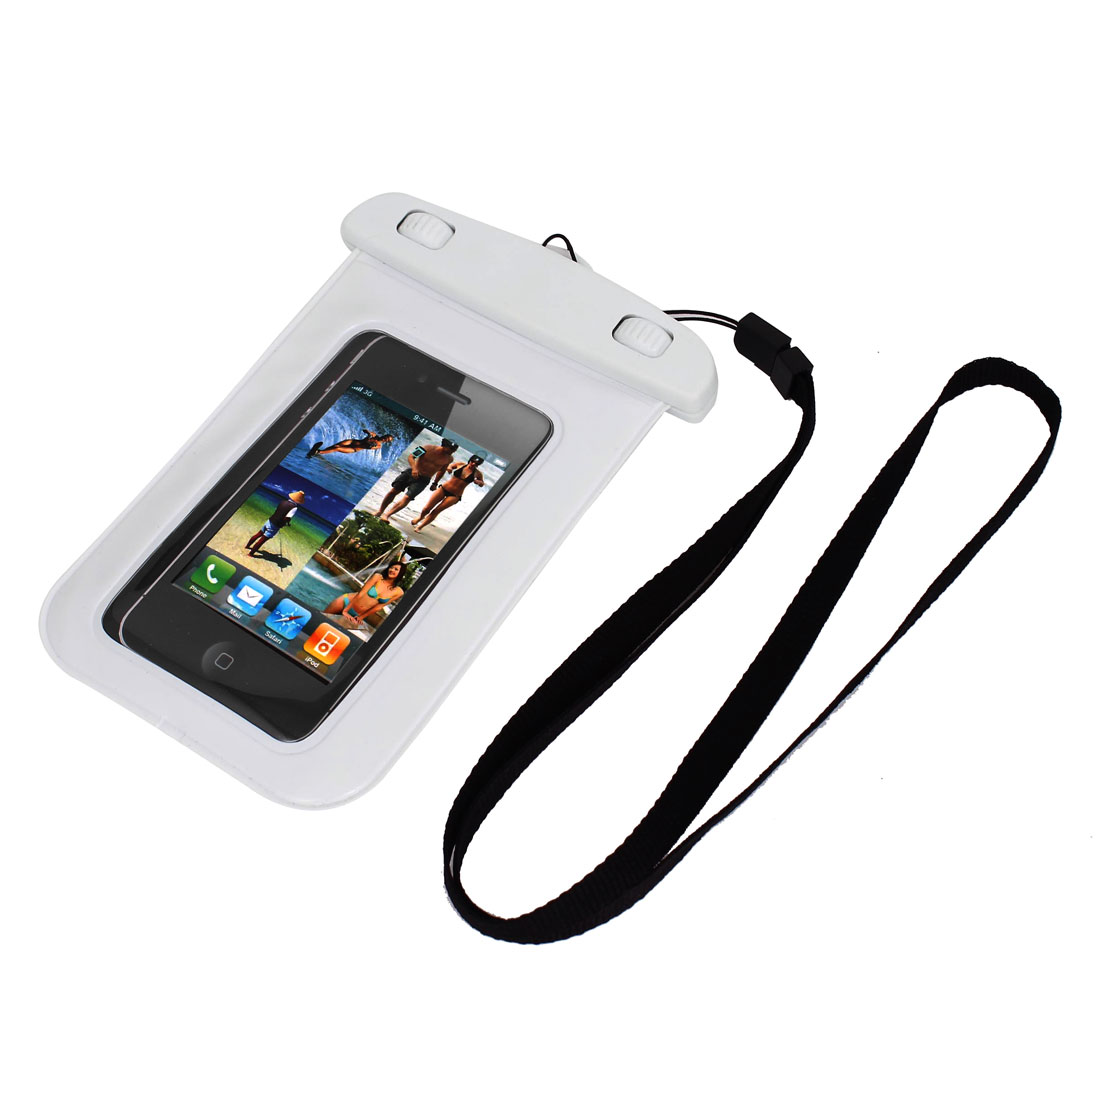 "Underwater Waterproof Case Dry Bag Cover Pouch White for 4"" Cell Phone"